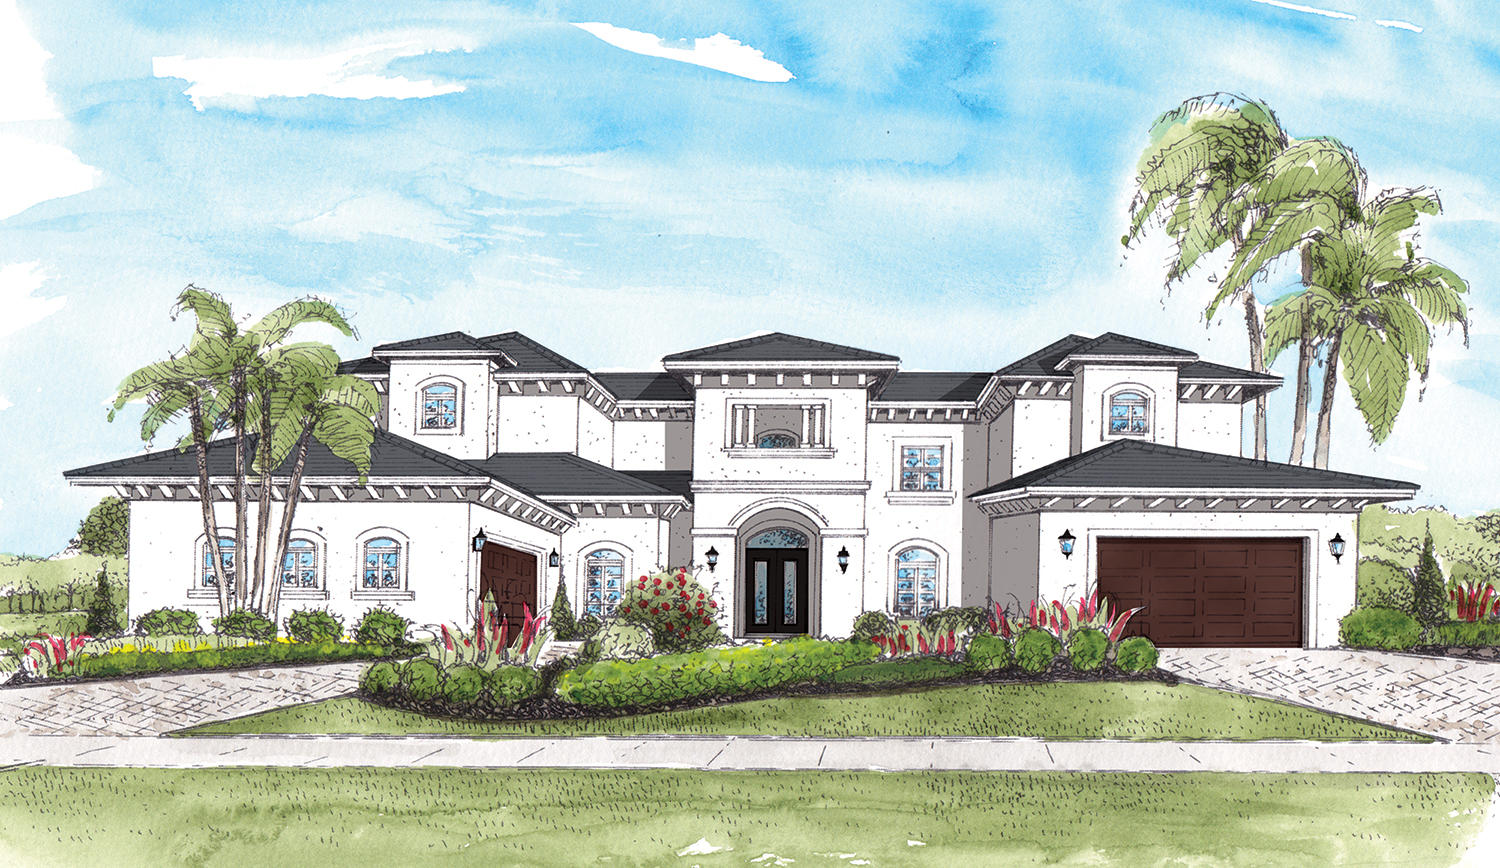 GOLF EQUITY MEMBERSGIP INCLUDED IN PURCHASE OF LOT. BUILD TO SUIT YOUR BRAND NEW CUSTOM DREAM HOME ON THE LAST REMAINING LOT IN MIZNER COUNTRY CLUB LOCATED IN THE CLUBS MOST PRESTIGIOUS ENCLAVE OF DEL PRADO. THIS LARGE .32 +/- ACRE GOLF & LAKEFRONT LOT OFFERS EXCEPTIONAL, EXPANSIVE WATER & LINKS VIEWS! RENOWNED BUILDER, DAVID HARVEY CONSTRUCTION, INC., ONE OF THE PREMIER CUSTOM, LUXURY ESTATE BUILDERS IN SOUTH FLORIDA, CAN BUILD A VARIETY OF HOME SIZES CUSTOMIZED TO YOUR SPECIFIC TASTES! MIZNER COUNTRY CLUB FEATURES A NEWLY RENOVATED SIGNATURE 18-HOLE GOLF COURSE, UPDATED & EXPANDED CLUBHOUSE AND POOL AREA, TENNIS COURTS, STATE-OF-THE-ART FITNESS CENTER, TWO PRO SHOPS, GRAND BALLROOM, FORMAL & CASUAL DINING OPTIONS. EASY ACCESS TO  AIRPORTS, BEACHES, SHOPPING AND FINE-DINING!